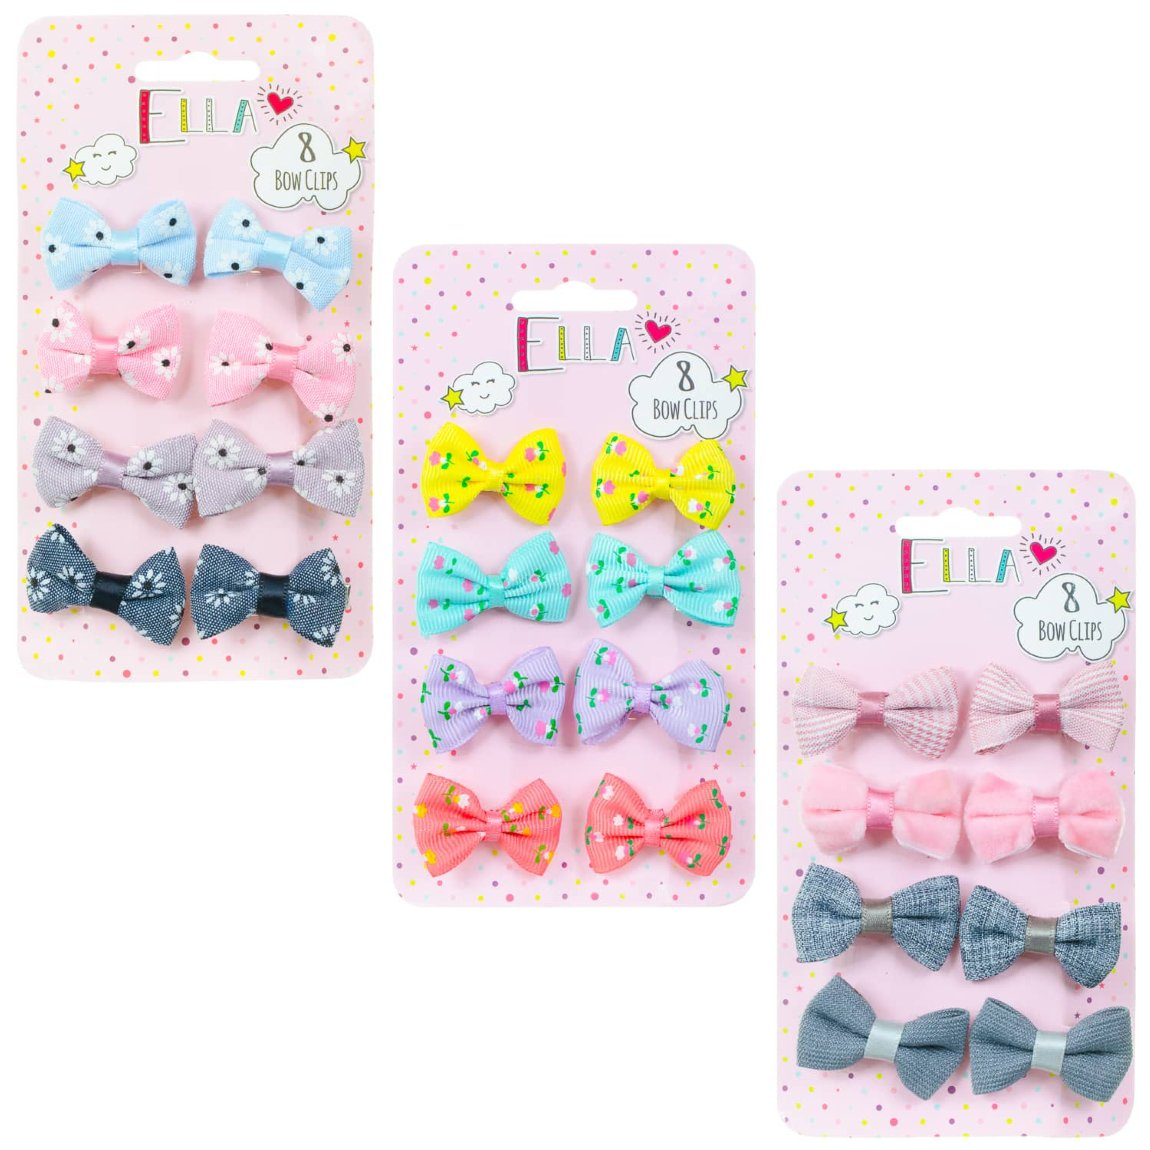 Ella Hair Bow Clips 8pk - Textured